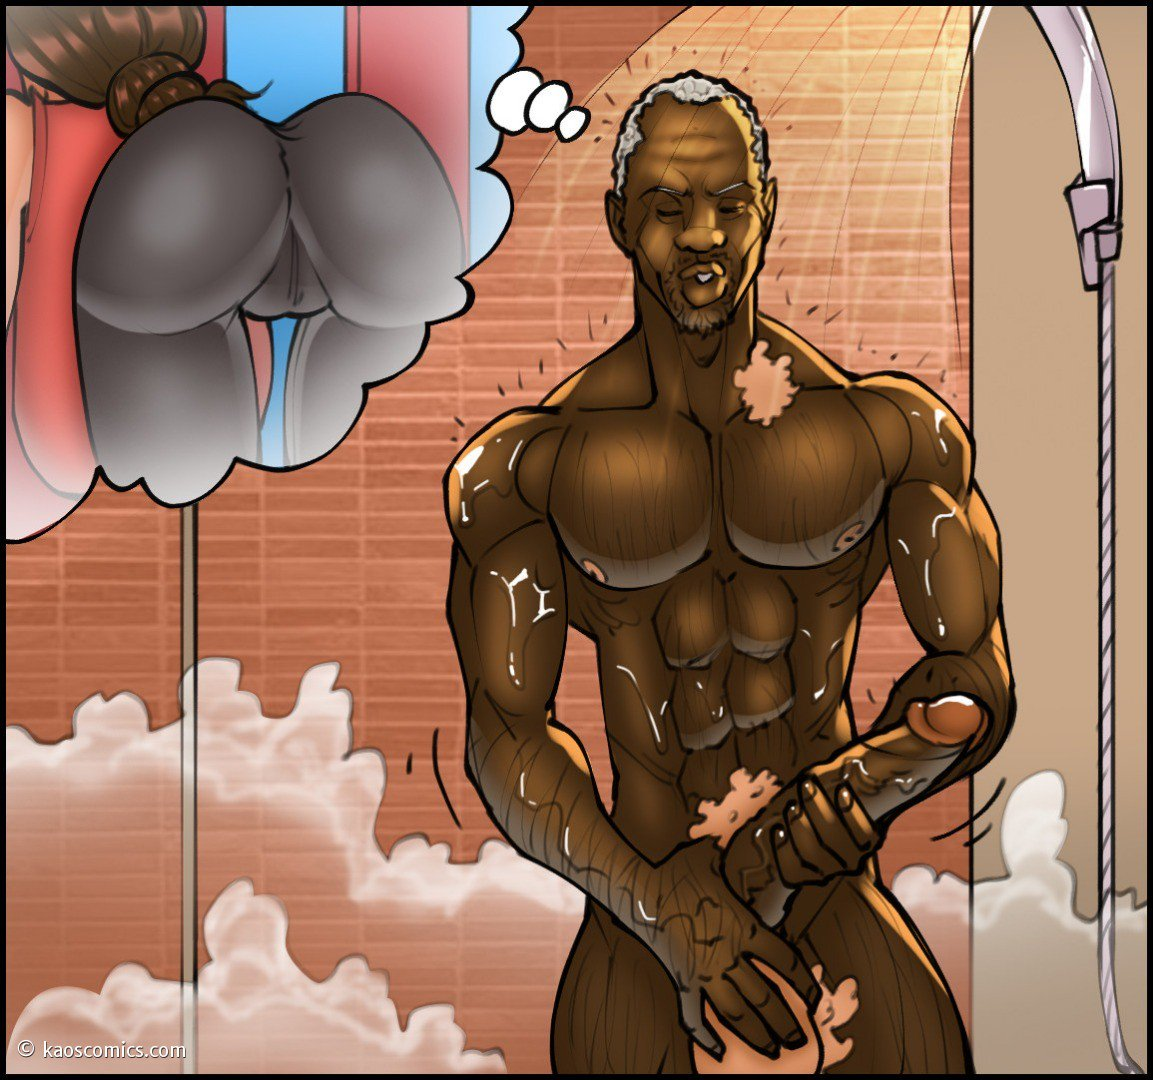 Kaos- Wife and the Black Gardeners Part 3